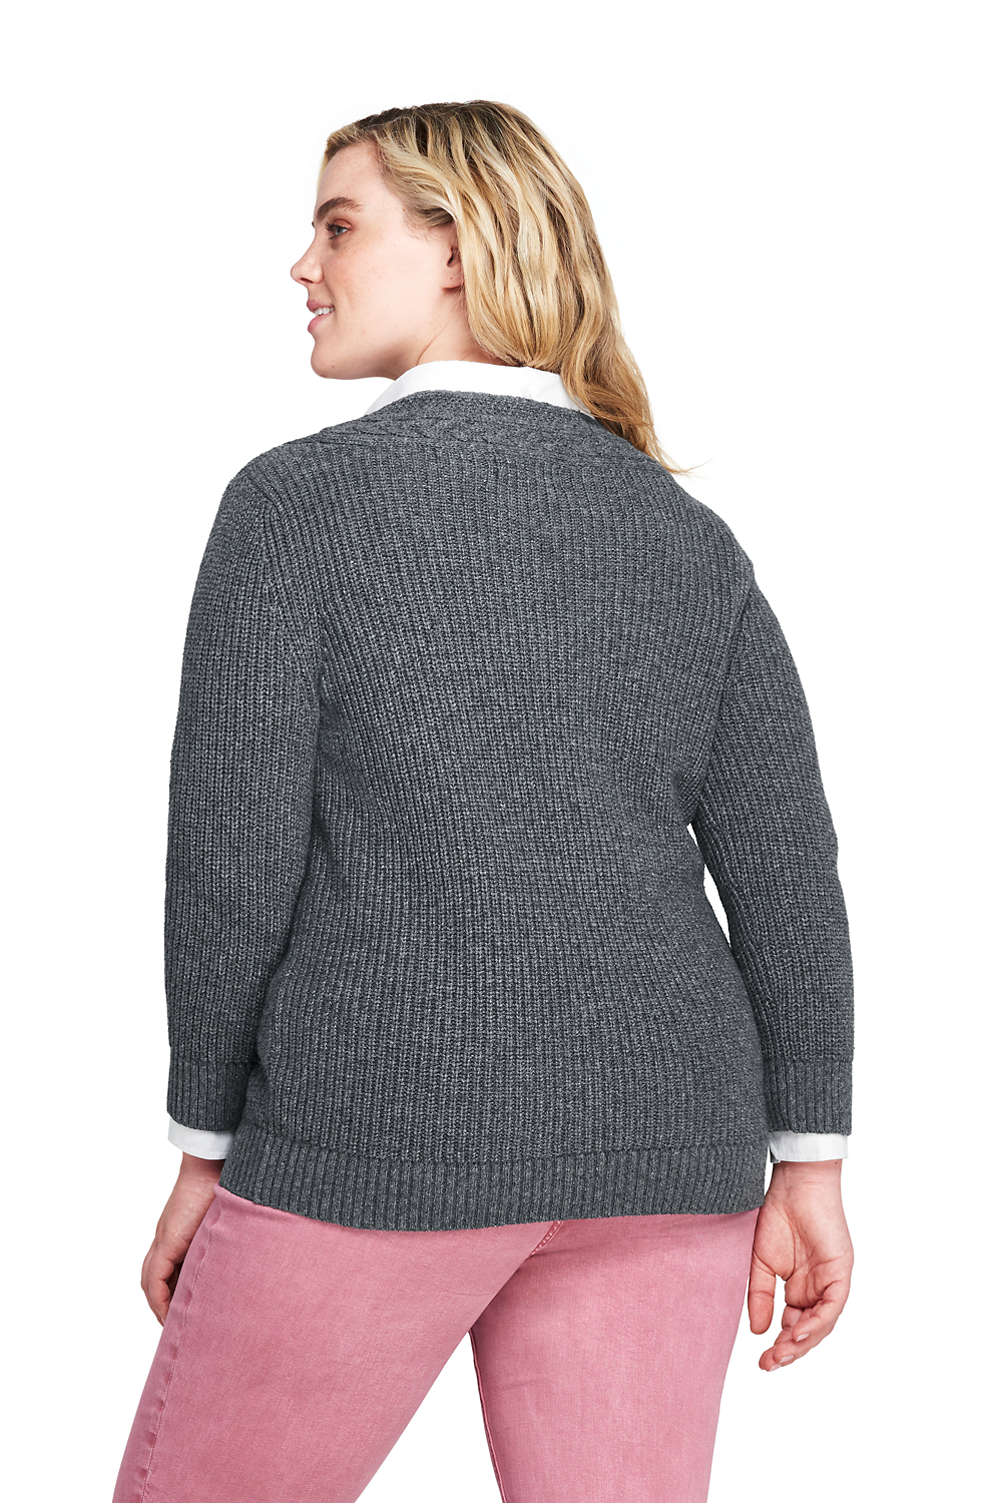 609209fdc76 Women s Plus Size Lofty Blend 3 4 Sleeve V-neck Tennis Sweater from ...